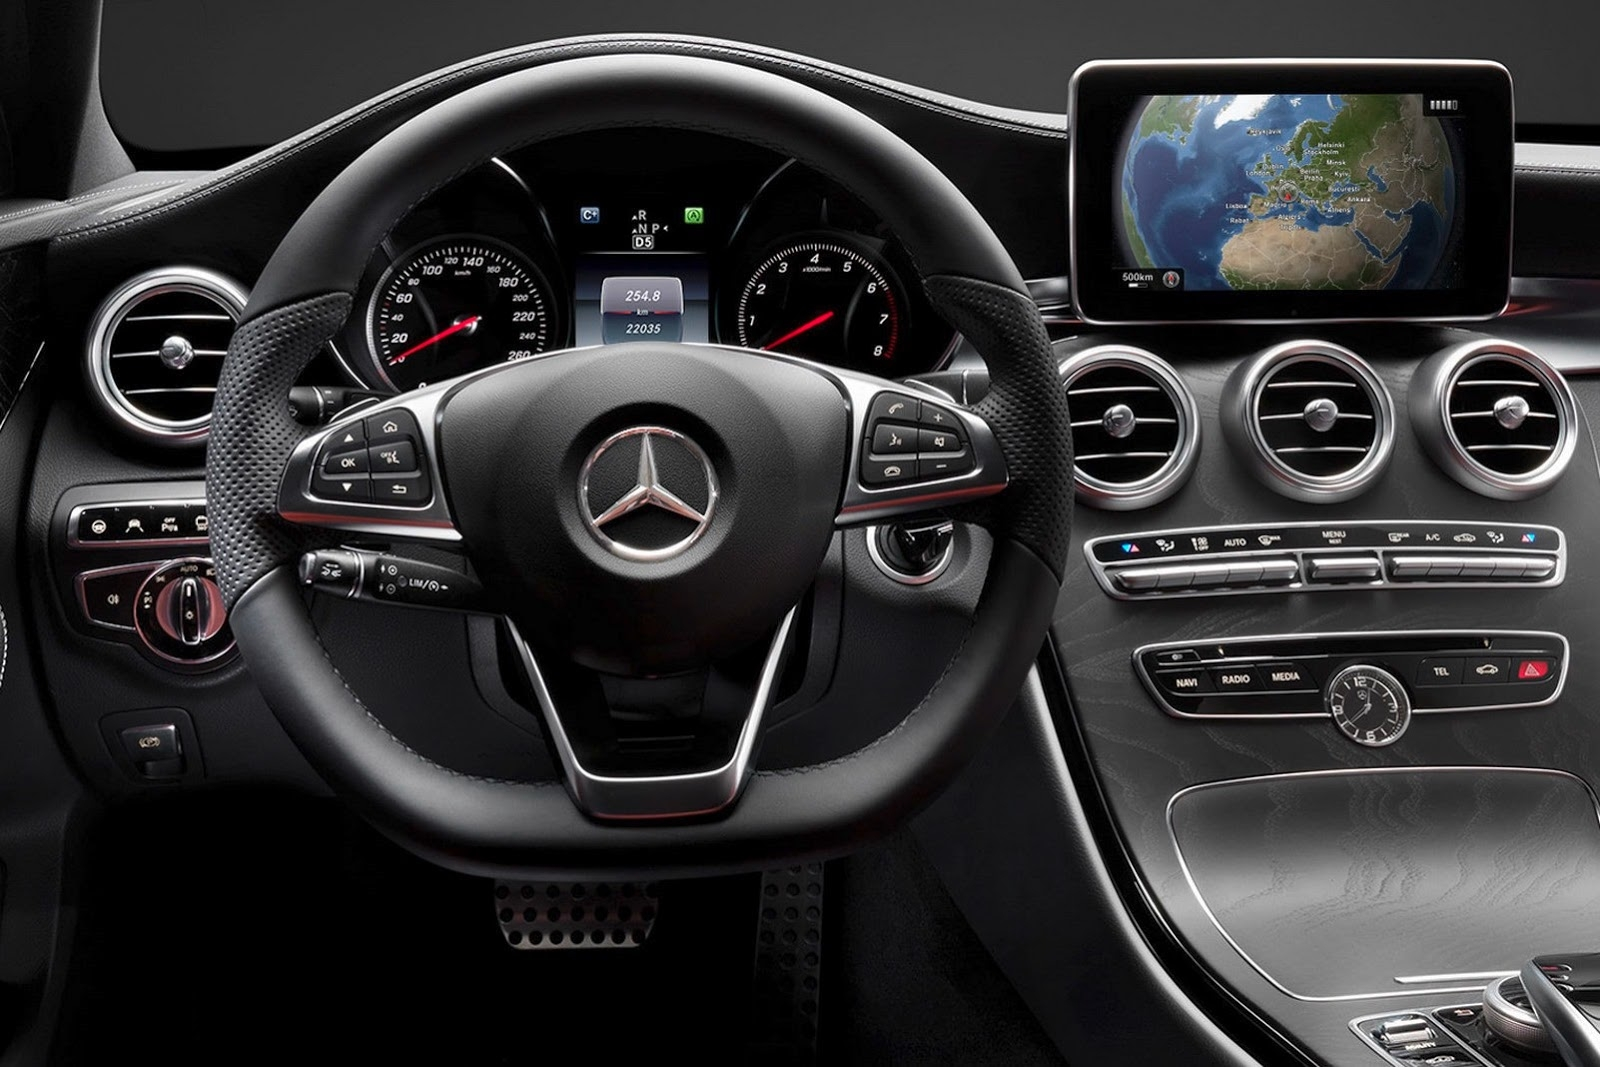 Mercedes Benz C Class 2020 Interior Dashboard